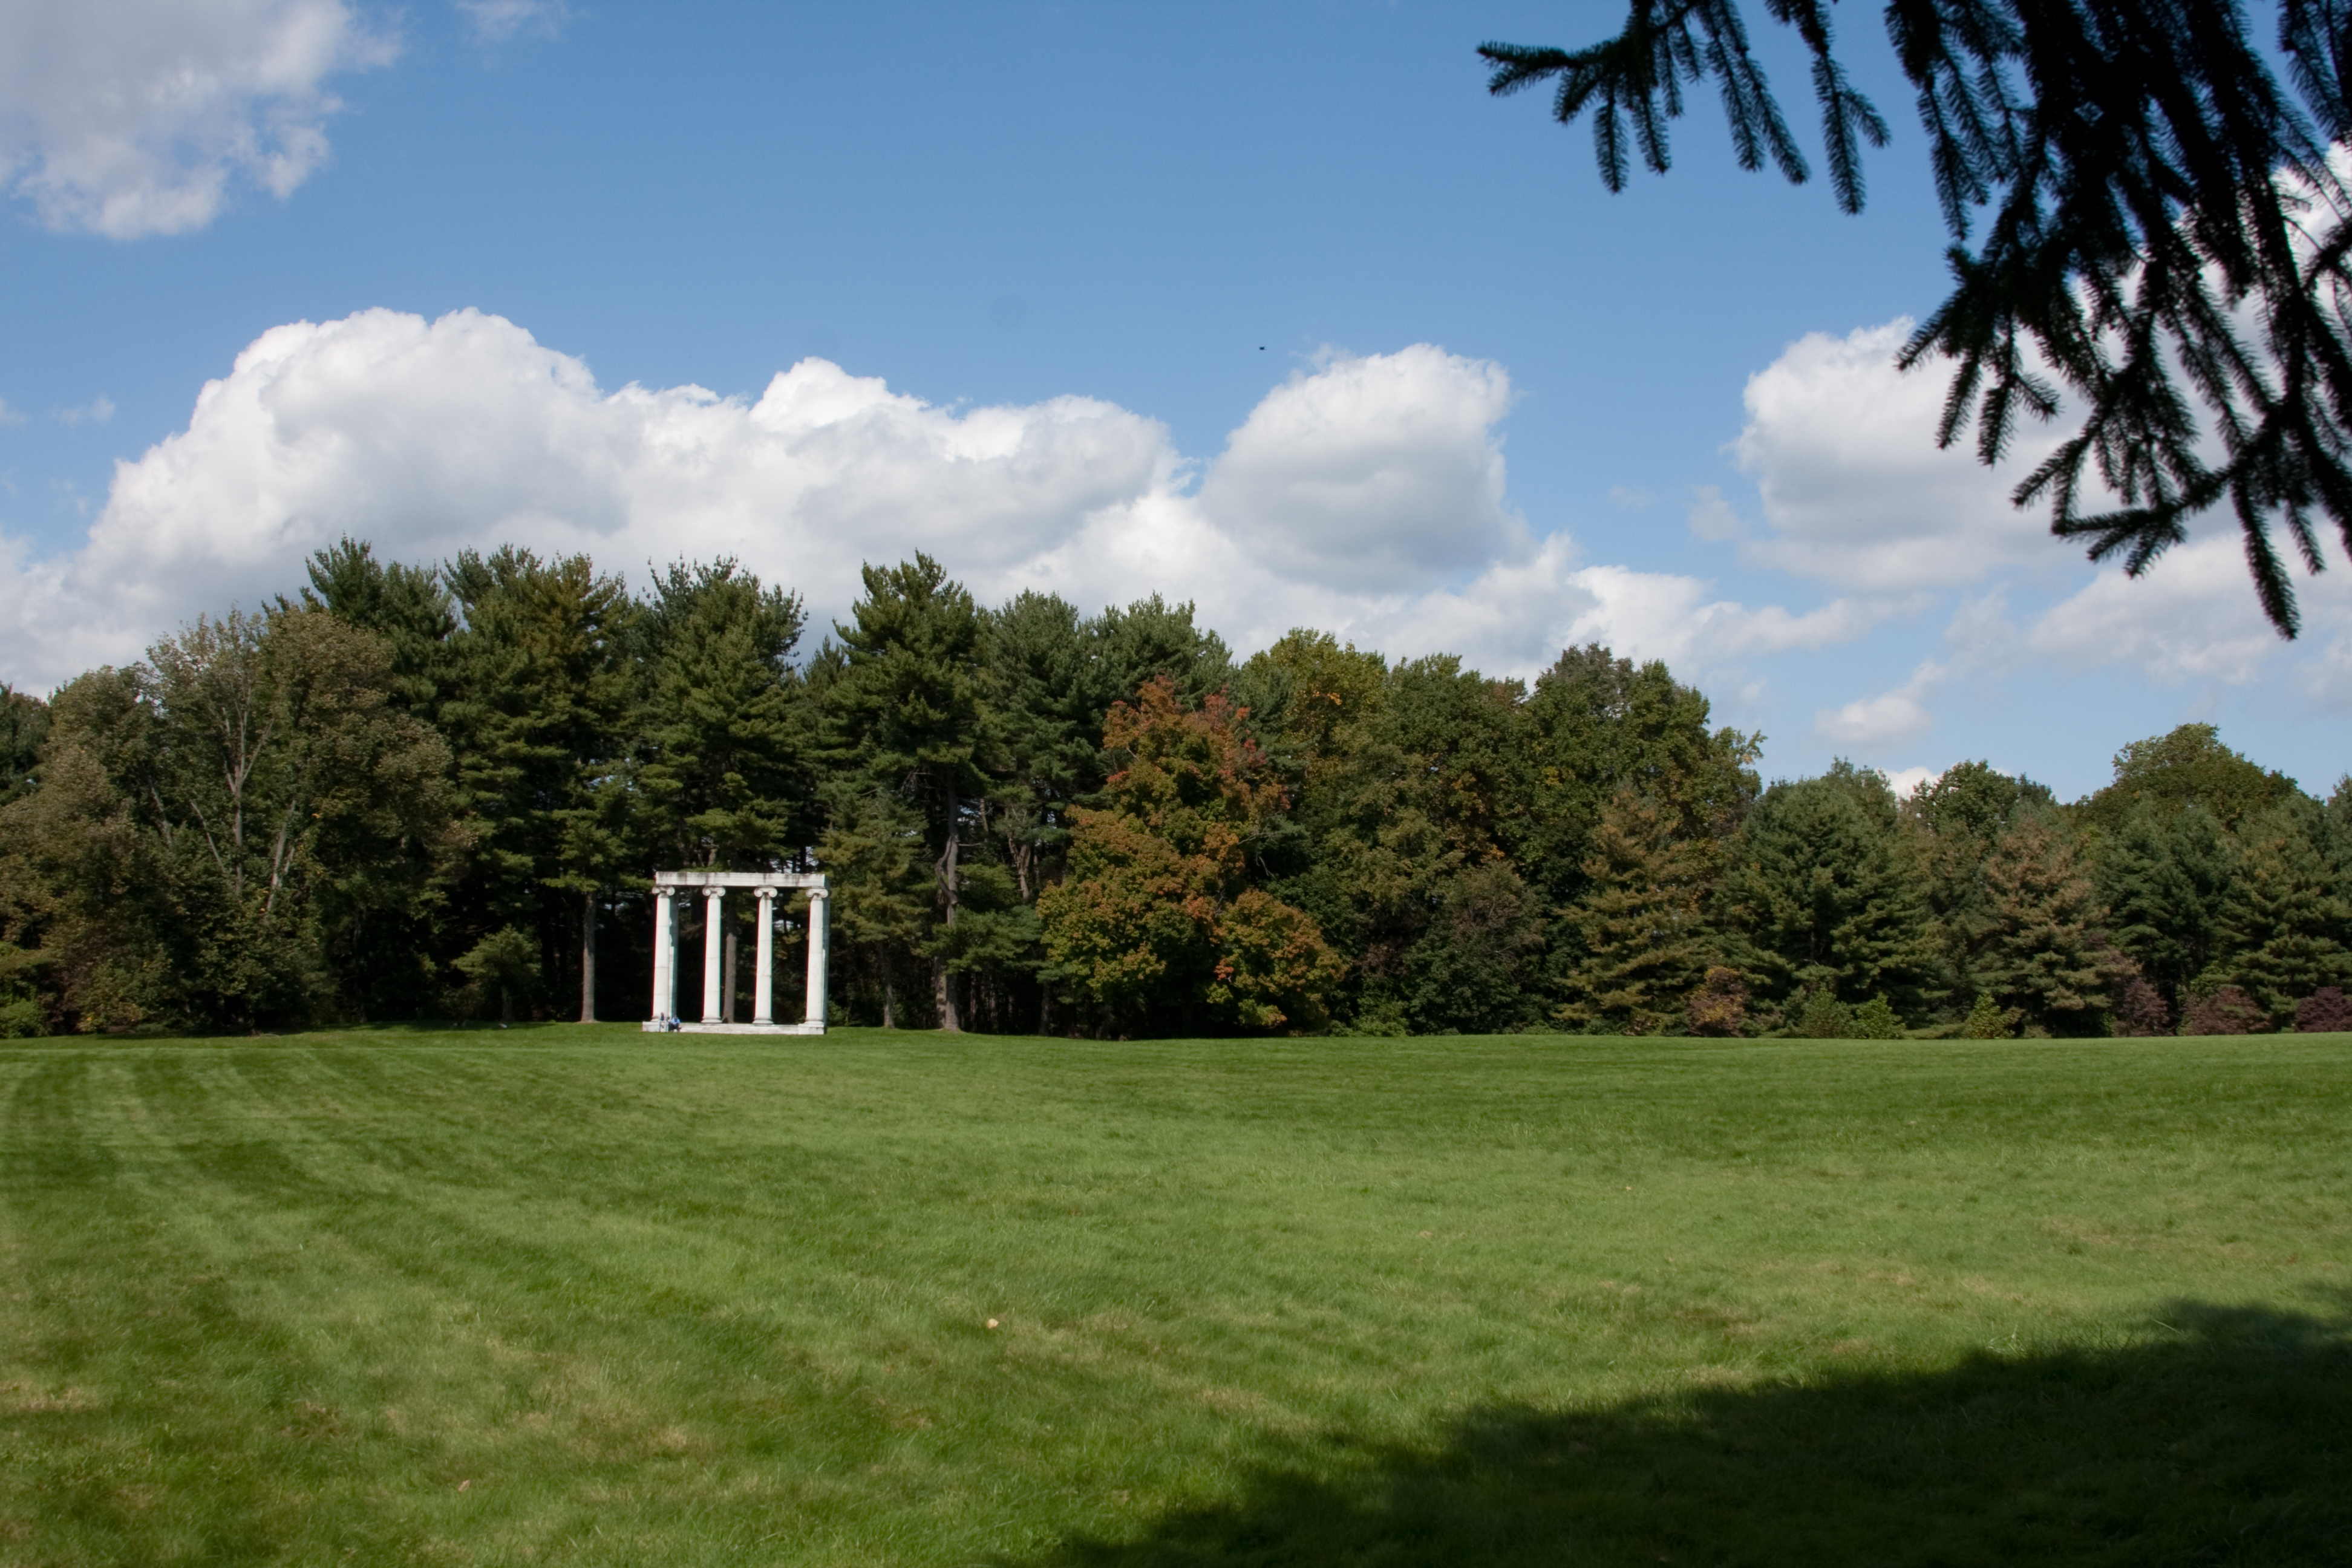 View of the expansive fields of the state park in front of the monument